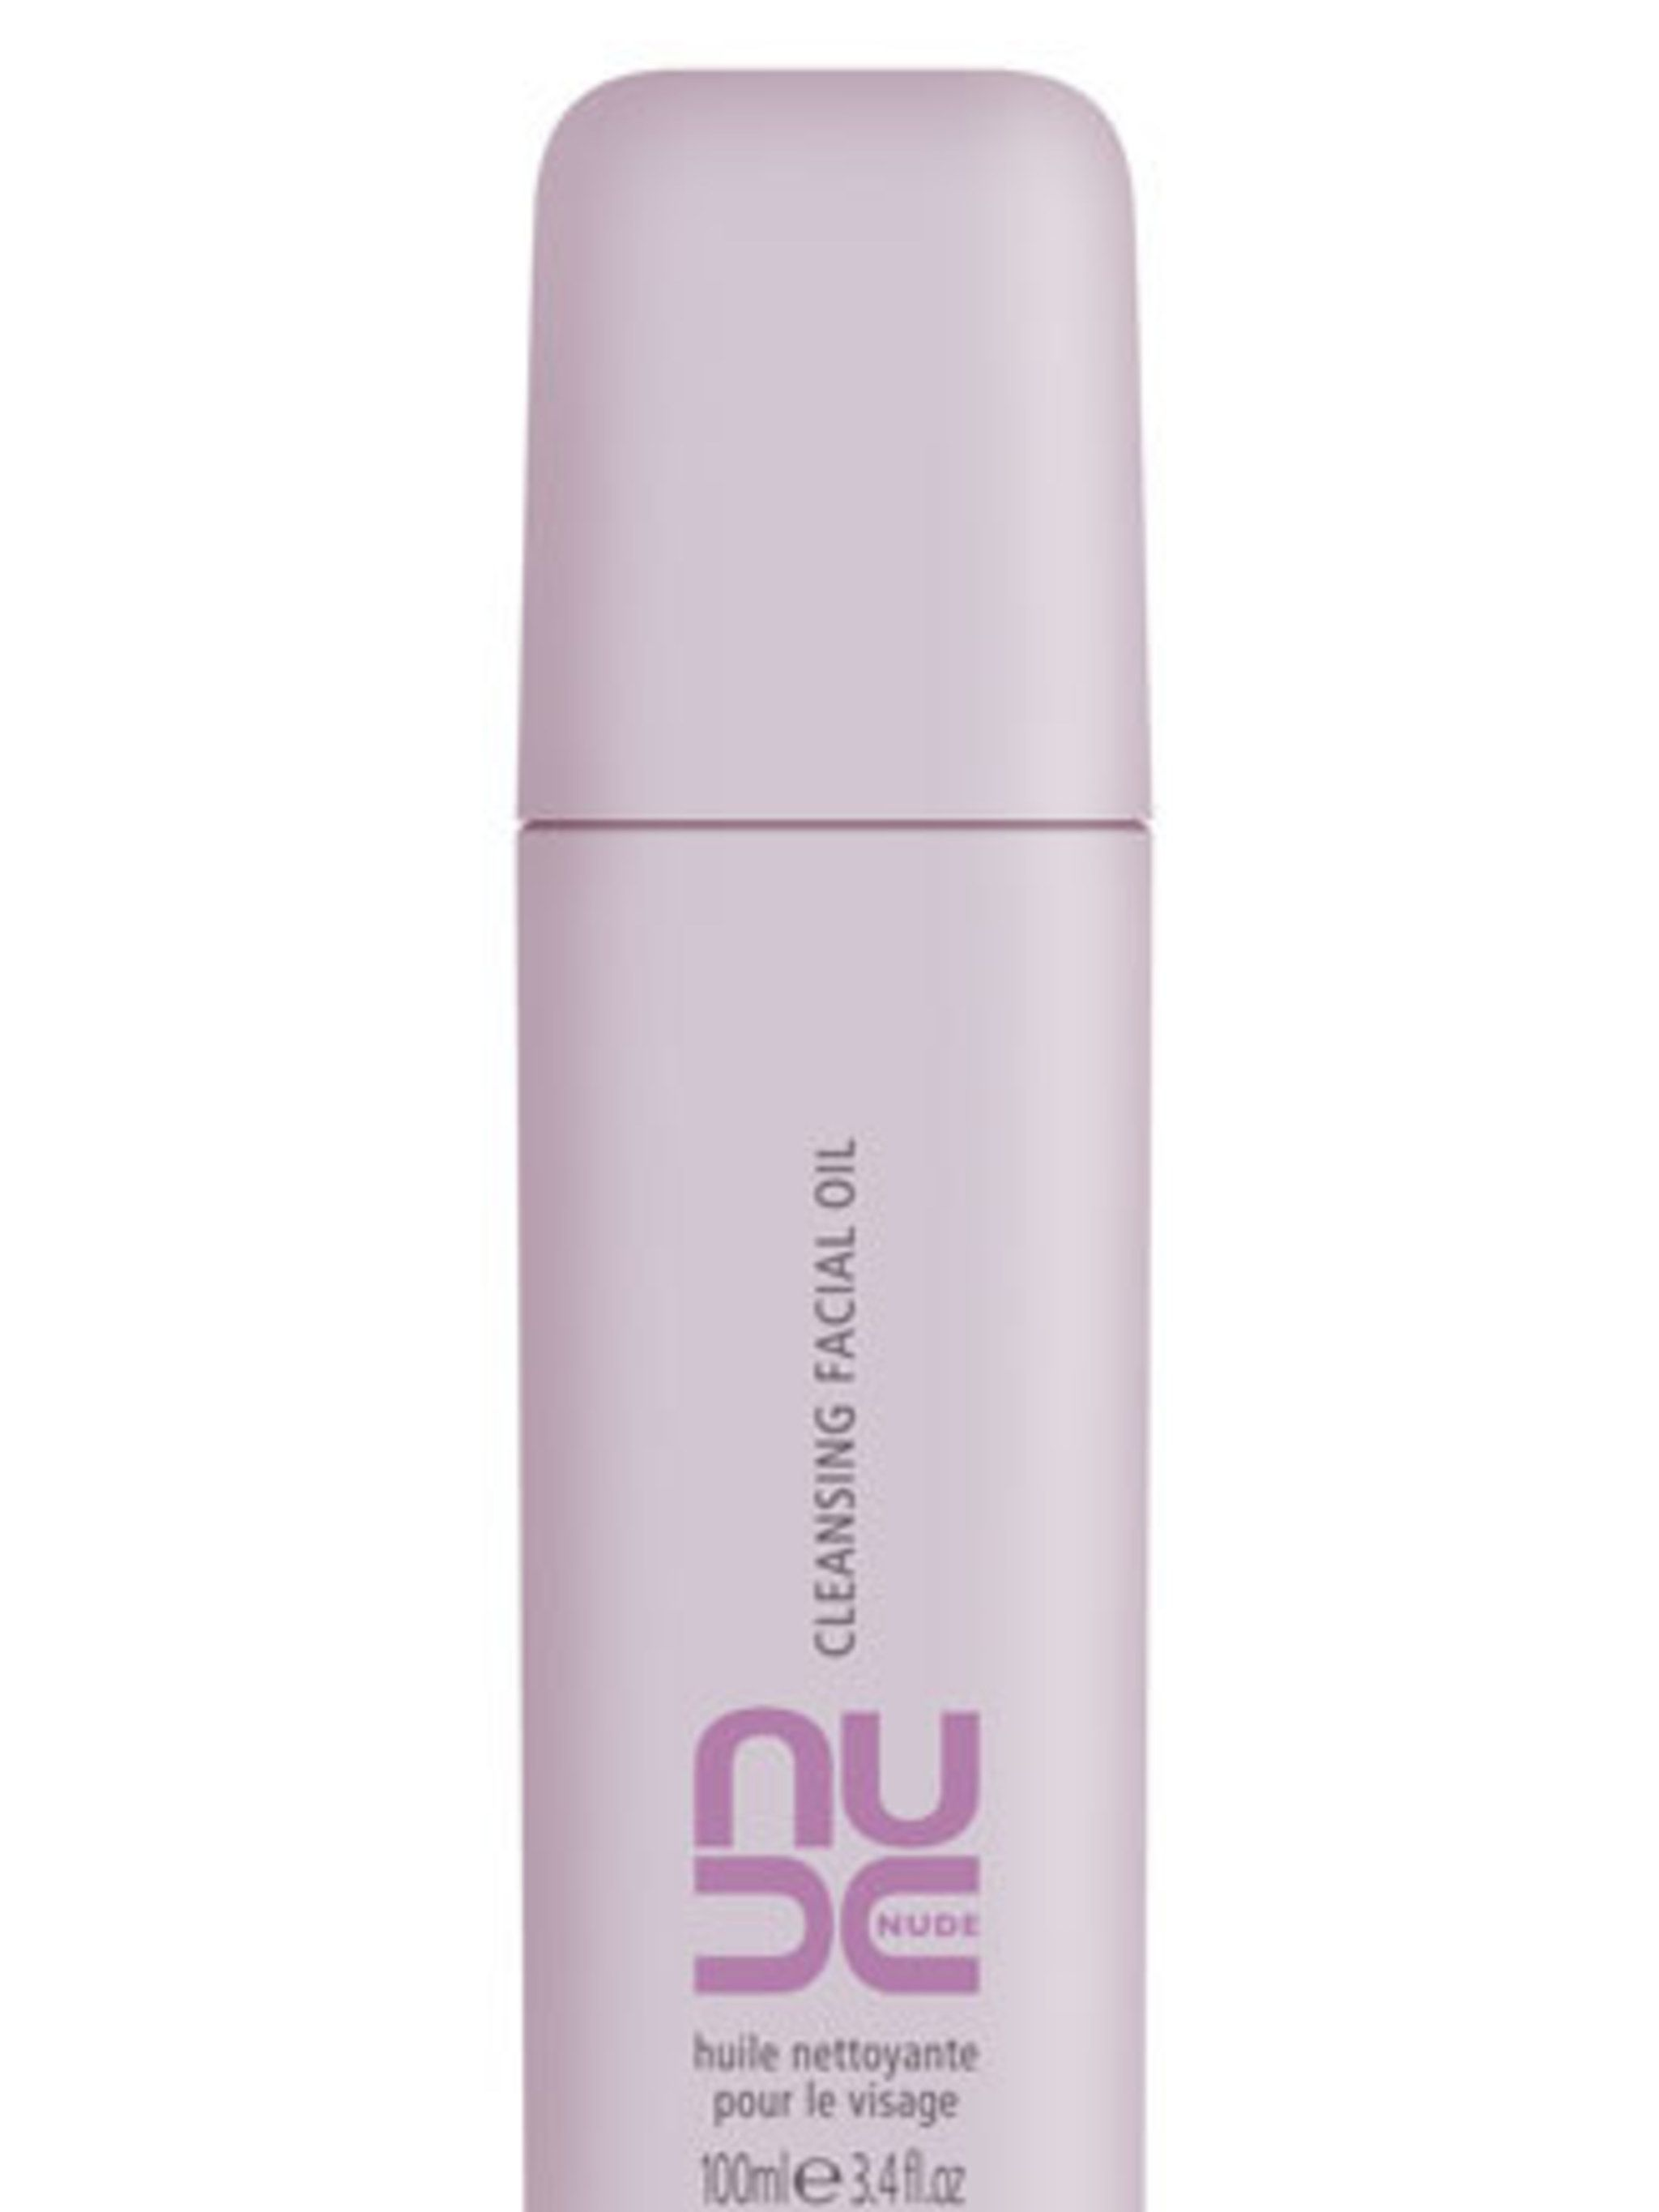 "<p>Cleansing Oil, £22 by <a href=""http://www.nudeskincare.com/products/face/cleansers/cleansing_facial_oil_100ml/"">Nude</a>For: normal to dry skin</p><p>This cleansing oil should be massaged into dry skin (to ensure it lifts all the grime), once warm wate"